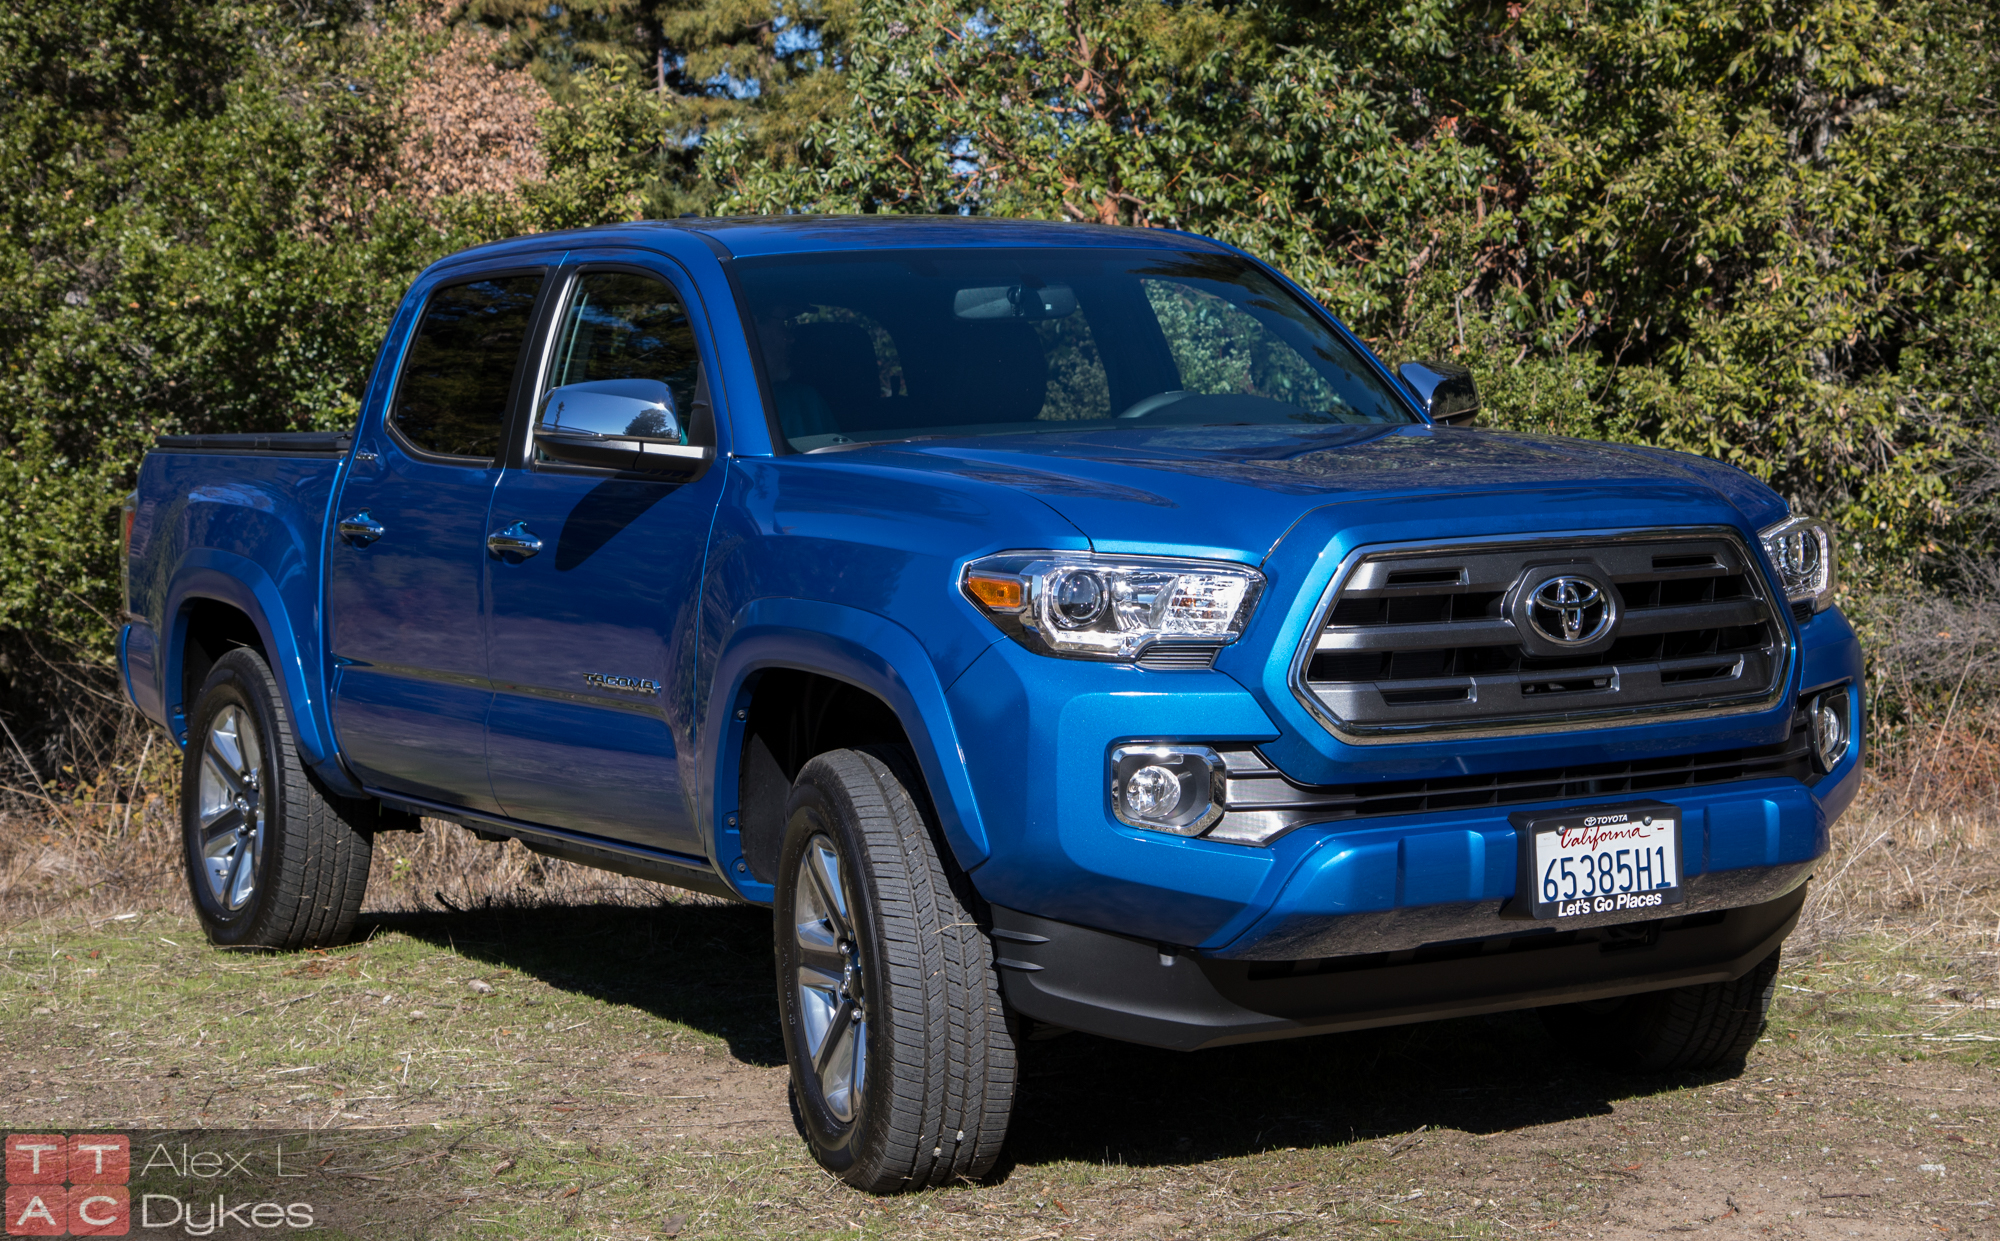 2016 toyota tacoma interior the truth about cars. Black Bedroom Furniture Sets. Home Design Ideas